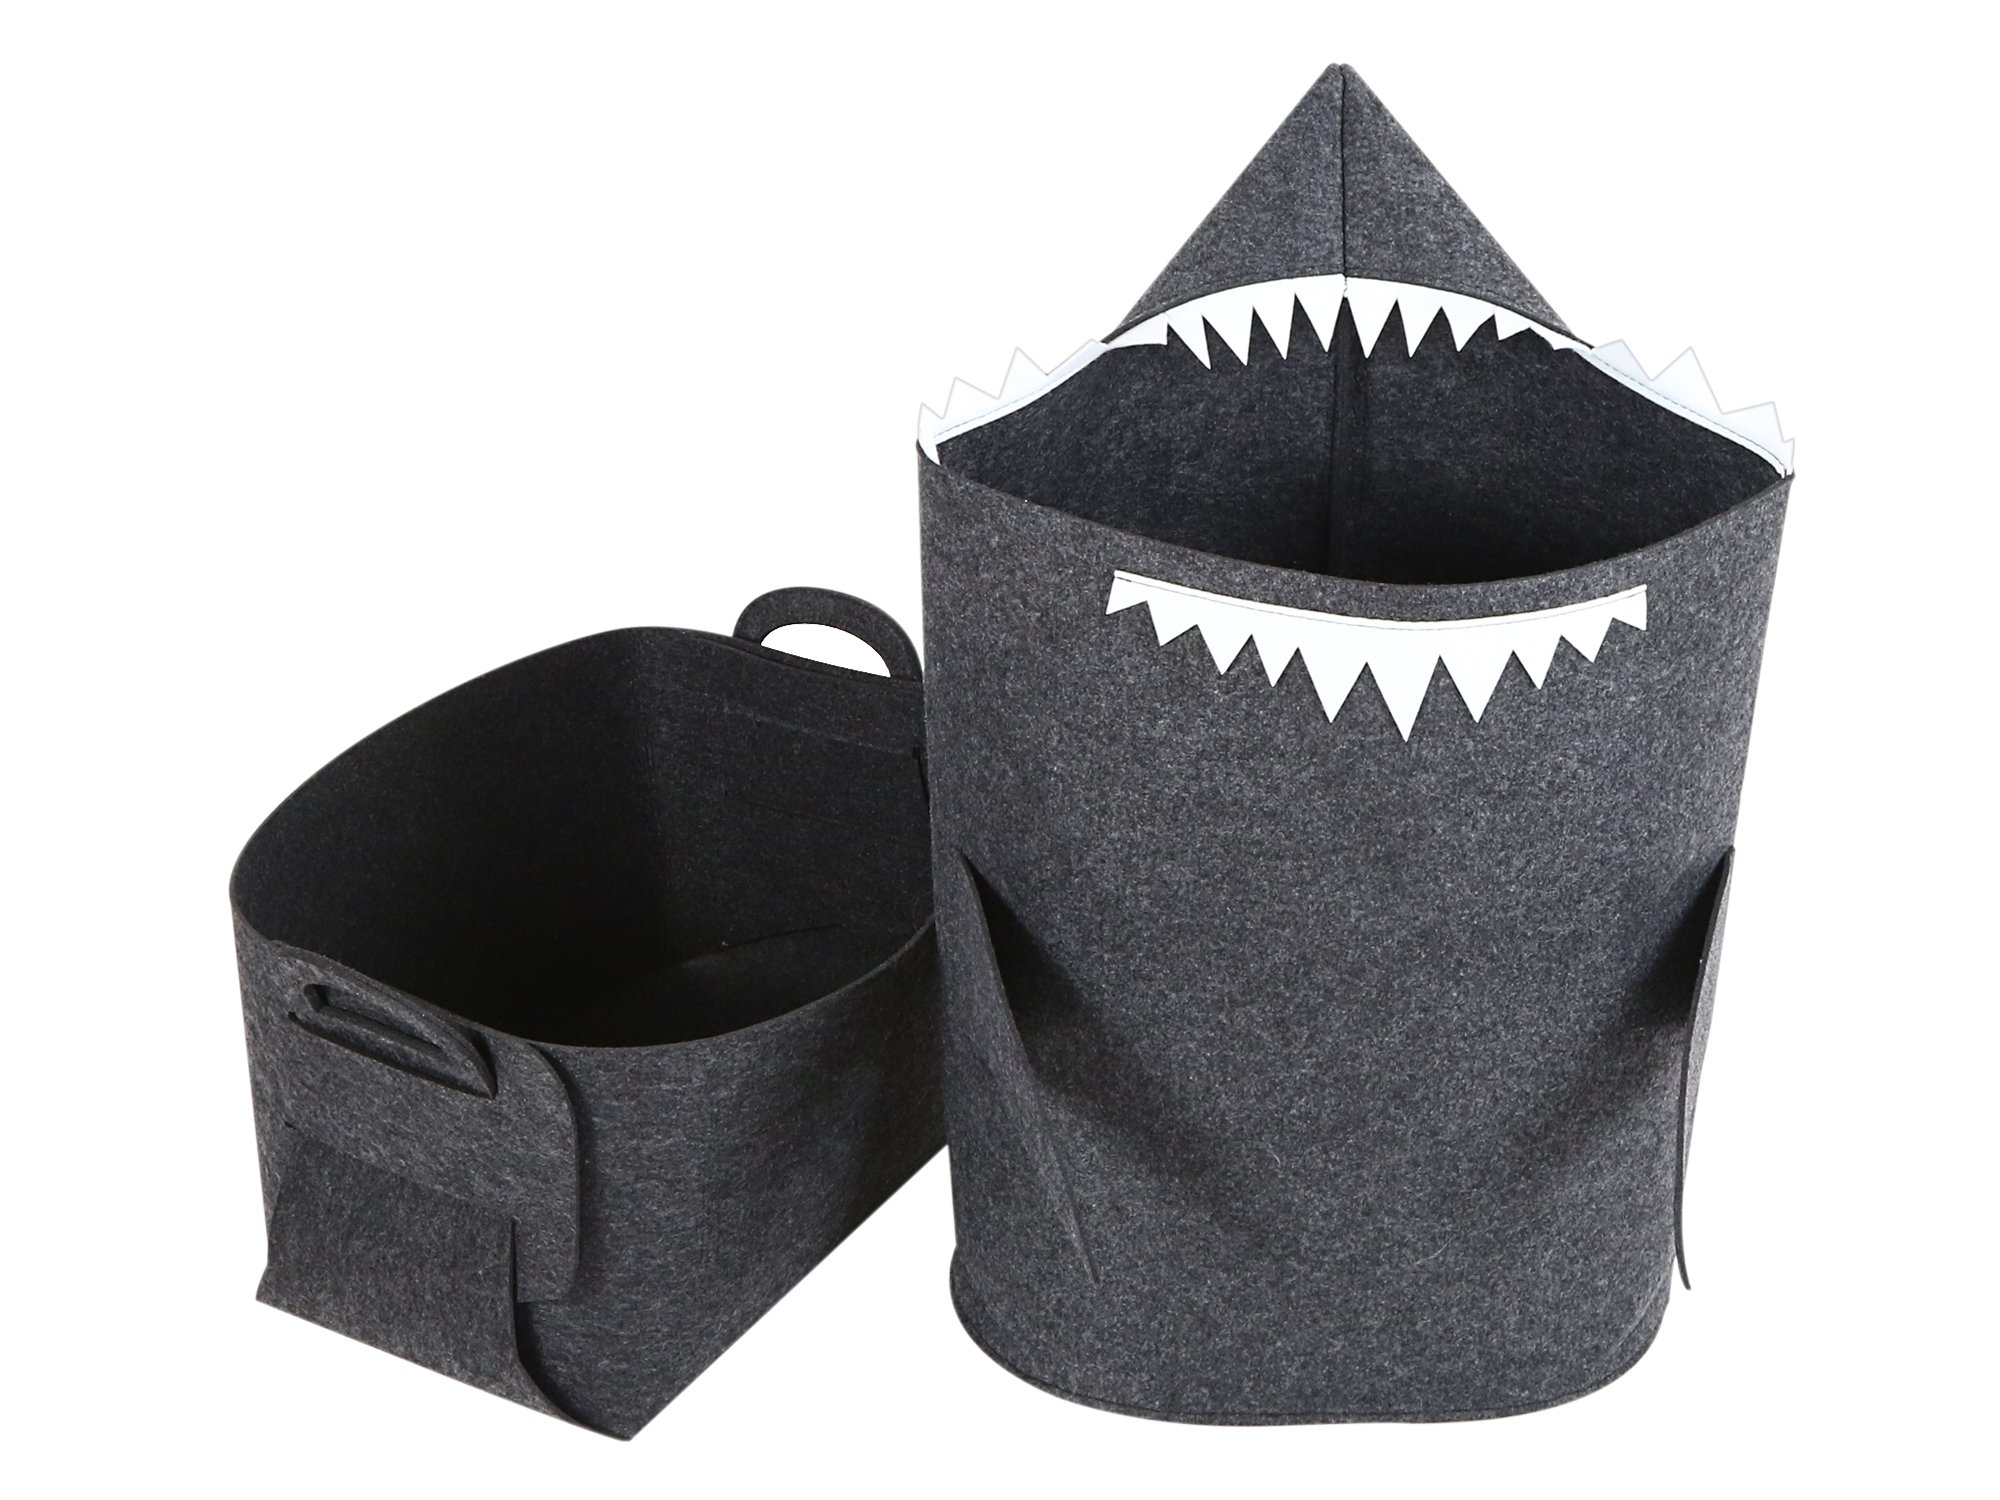 ARTIT Kids' Laundry Hamper Basket Storage & Bin Bag Tote with Handles - Shark & Box Set Made of Premium Quality Felt, Non-Woven, Eco-Friendly, Collapsible, Foldable & Multi-Functional - Dark Gray